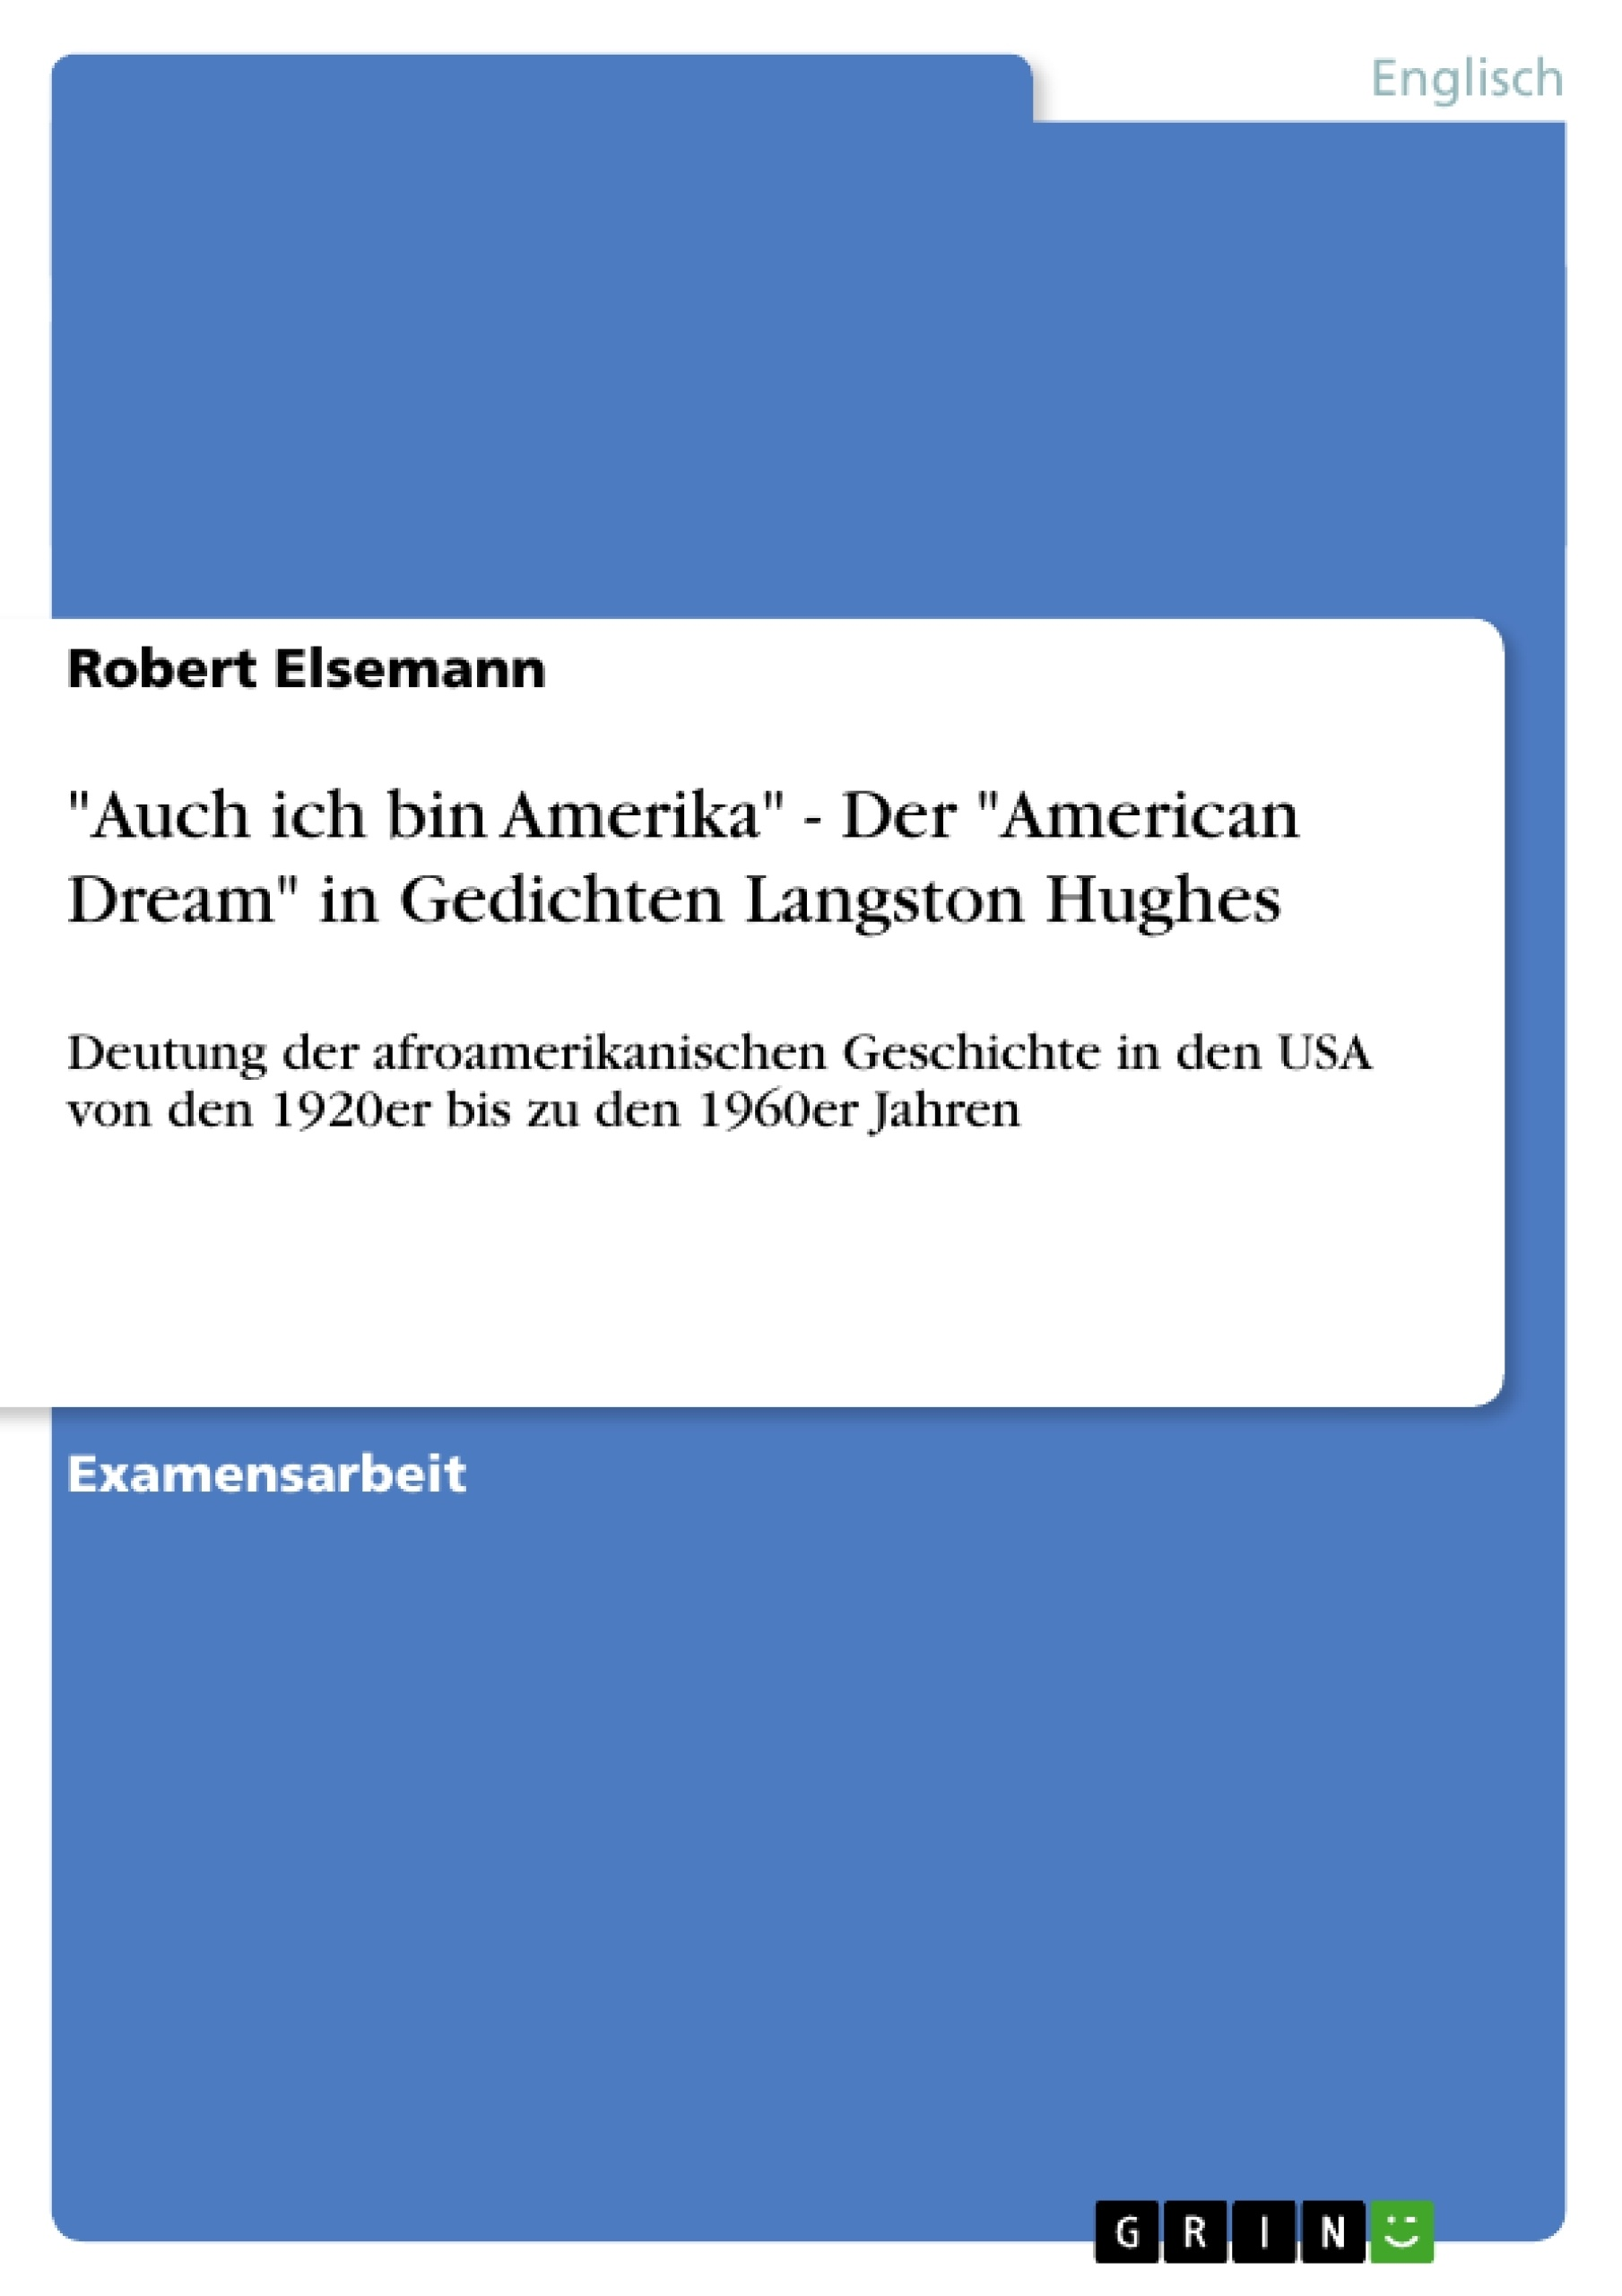 """bachelor thesis dict Translations for """"bachelor thesis"""" in the german » english dictionary (go to english » german) seine bachelor-/ masterarbeit / dissertation verteidigen univ to defend one's bachelor [ 's ]/ master [ 's ]/ phd thesis."""